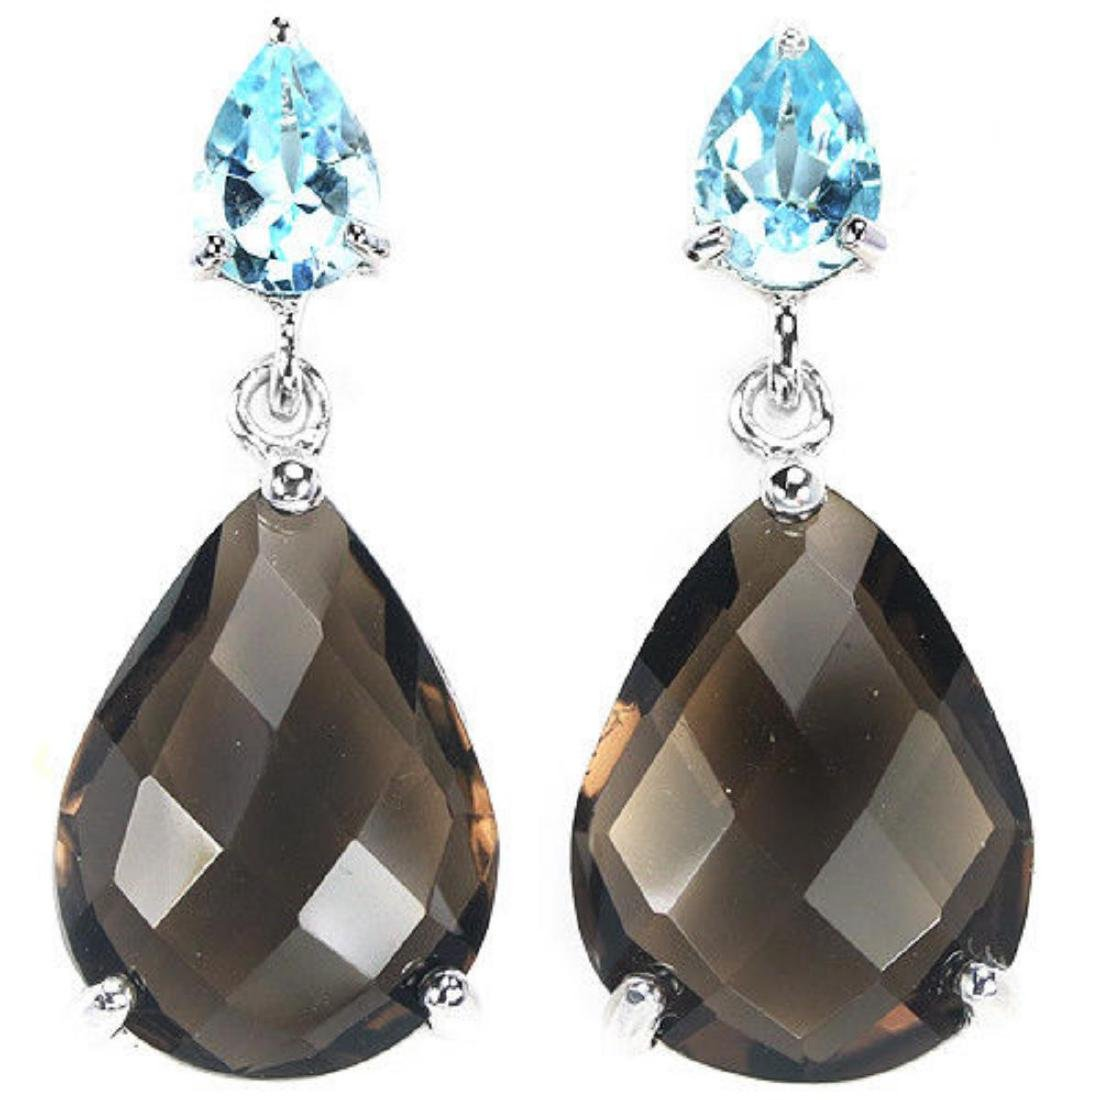 NATURAL SMOKY QUARTZ & SKY BLUE TOPAZ Earrings